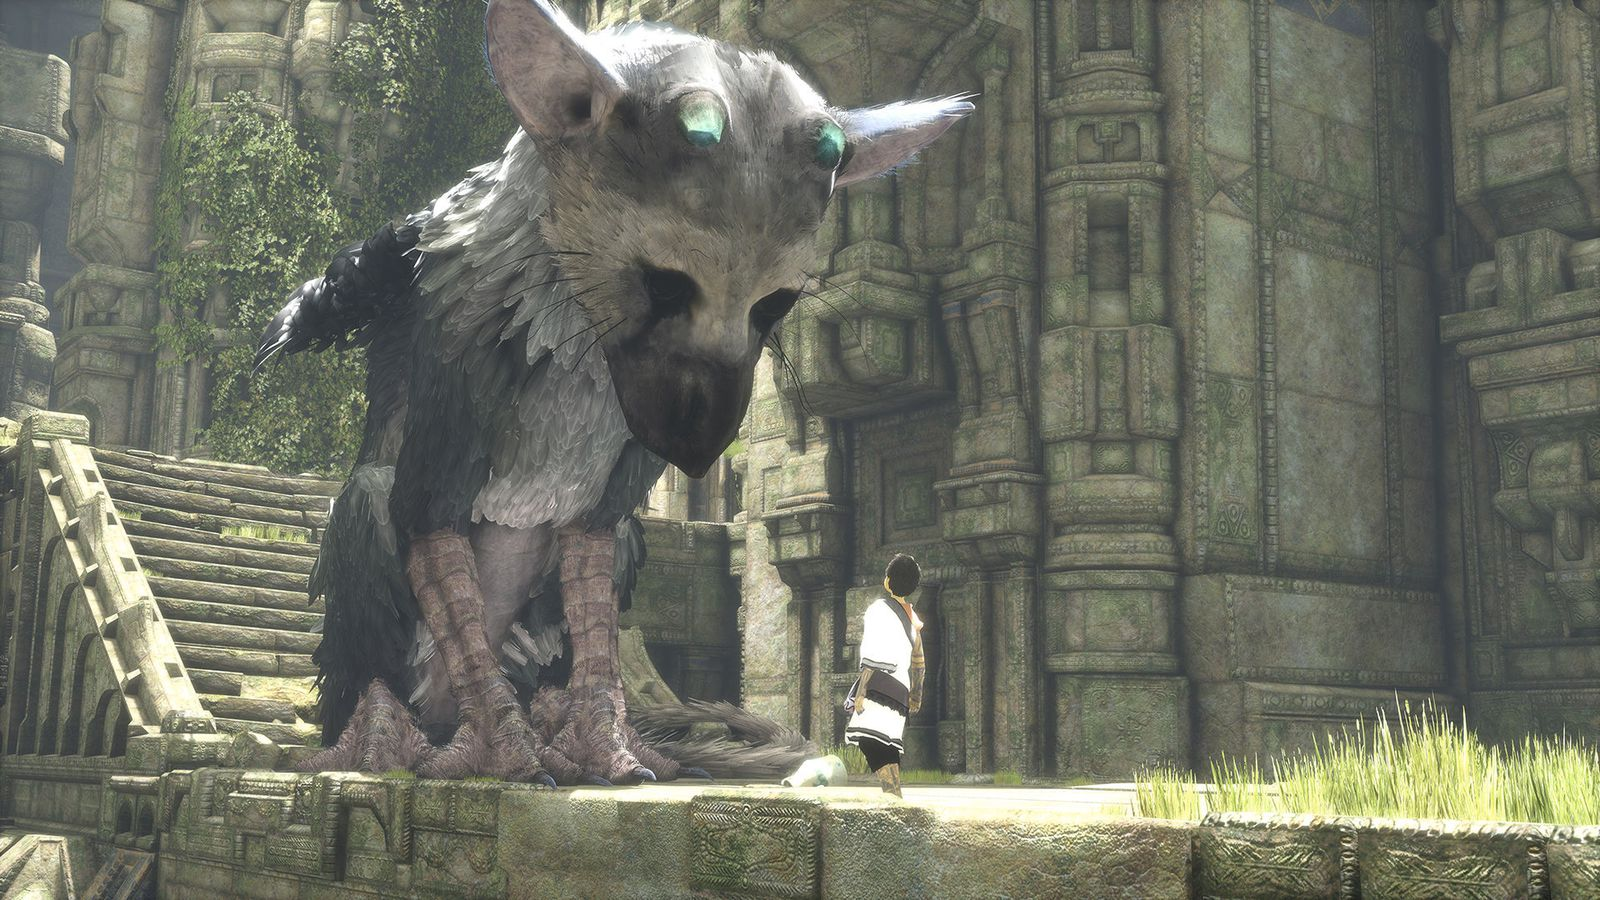 Is The Last Guardian worth the frustration?